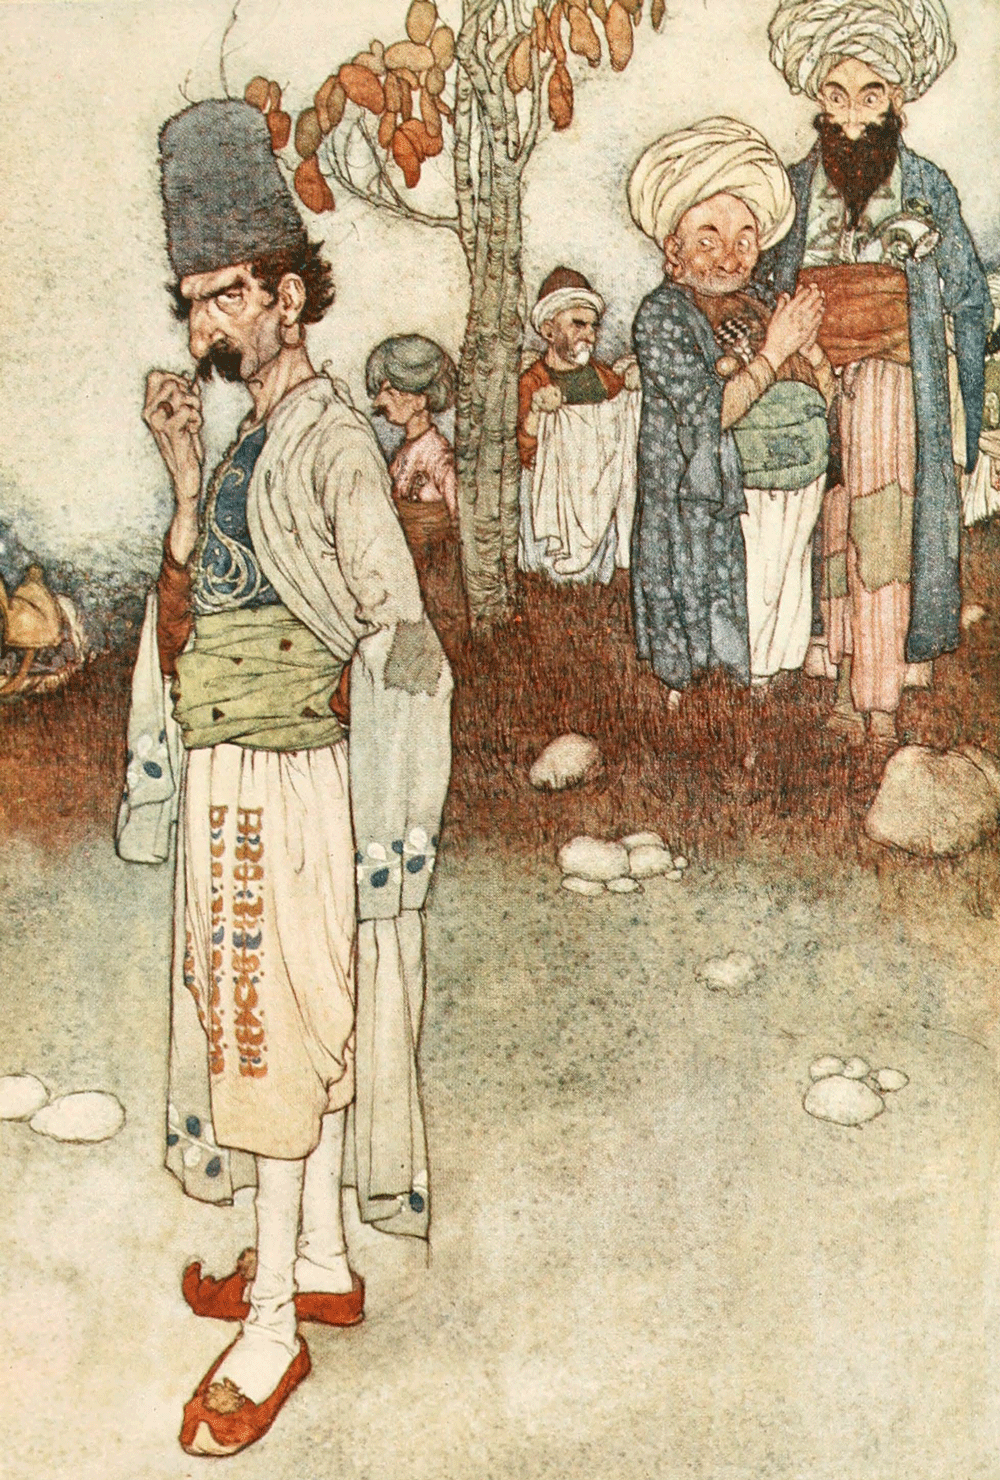 Ali Baba and the Forty Thieves, Edmund Dulac, Arabian Nights